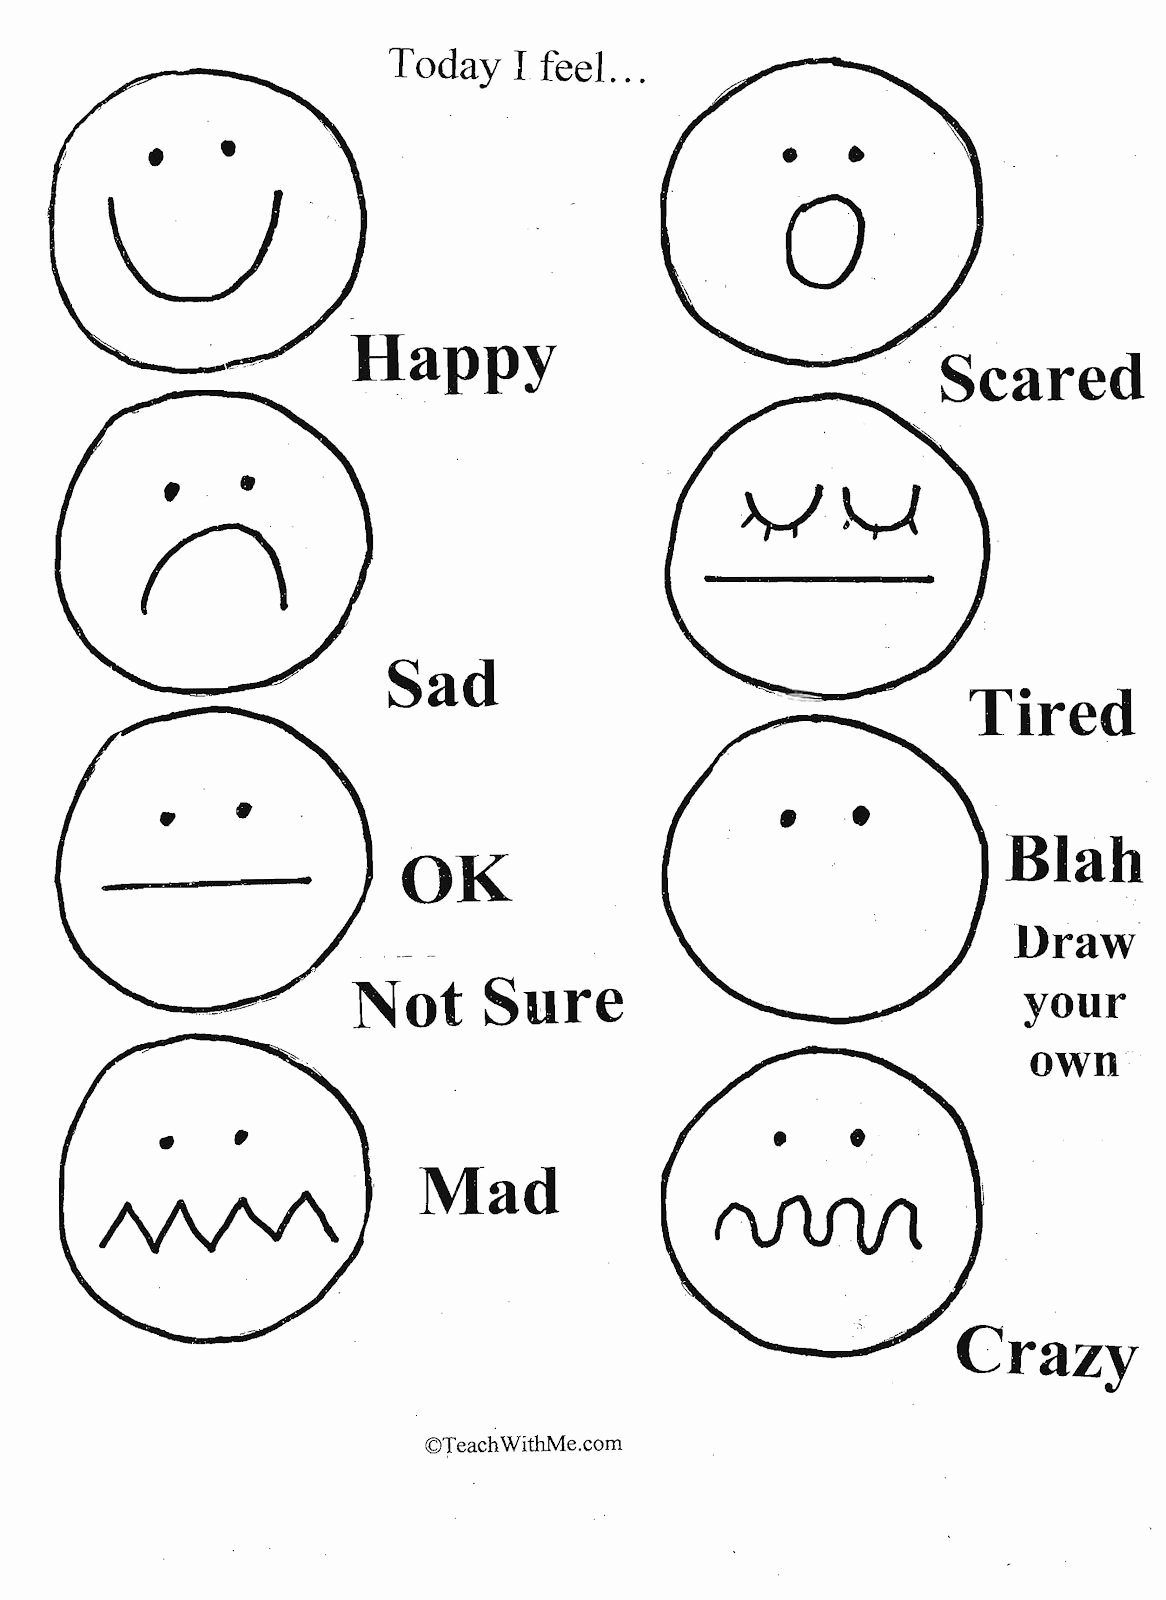 Feelings and Emotions Worksheets for Preschoolers Unique Emotion assessment 1 166—1 600 Pixels